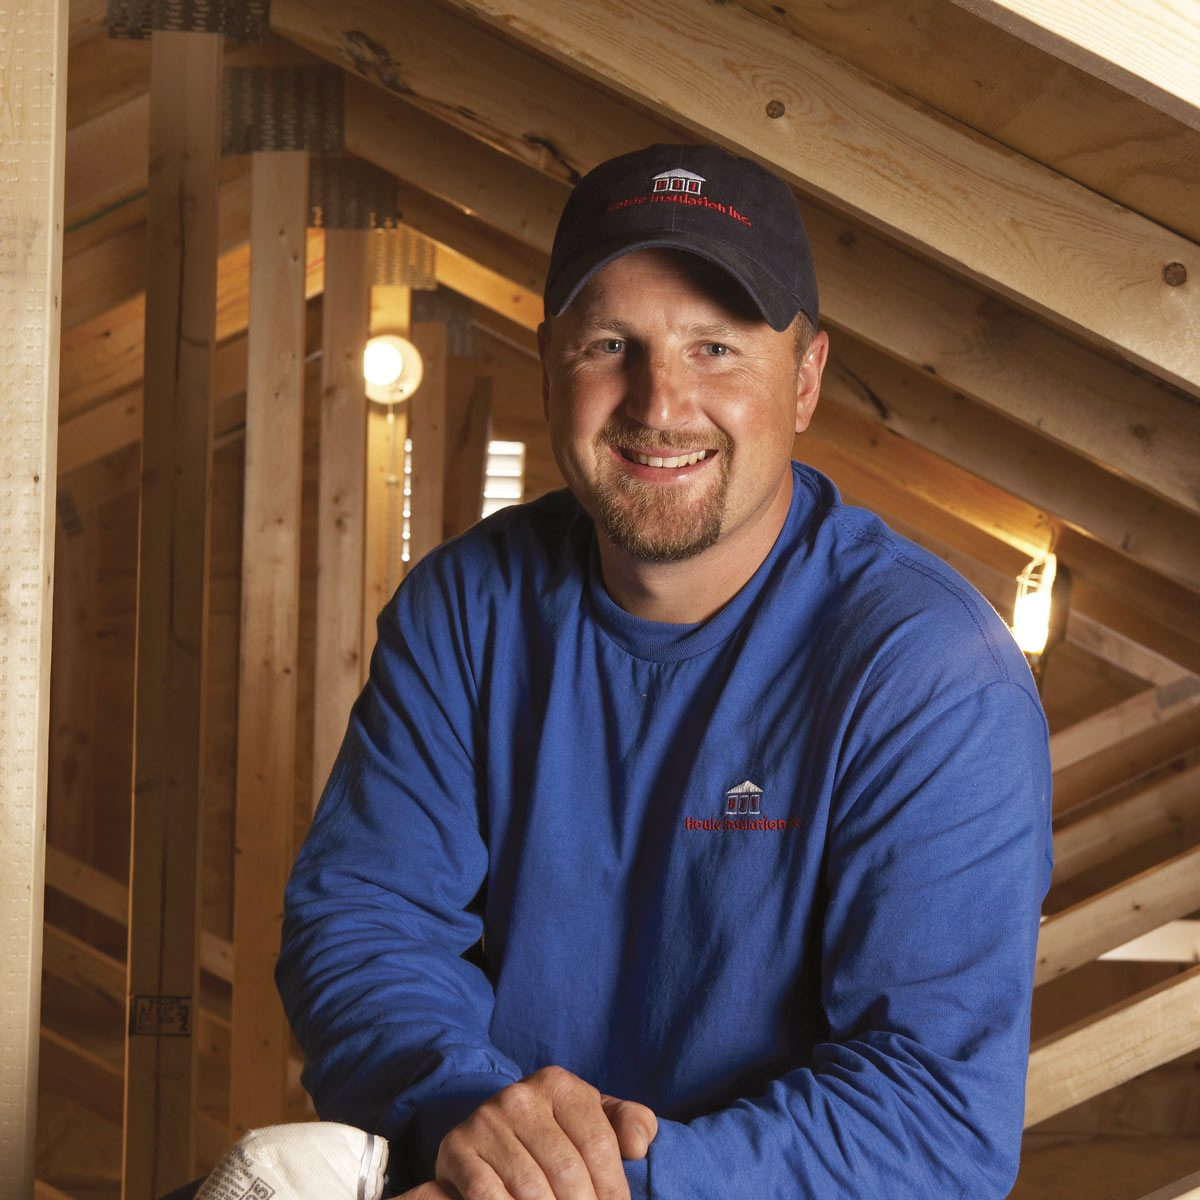 Arne Olson, the owner of Houle Insulation